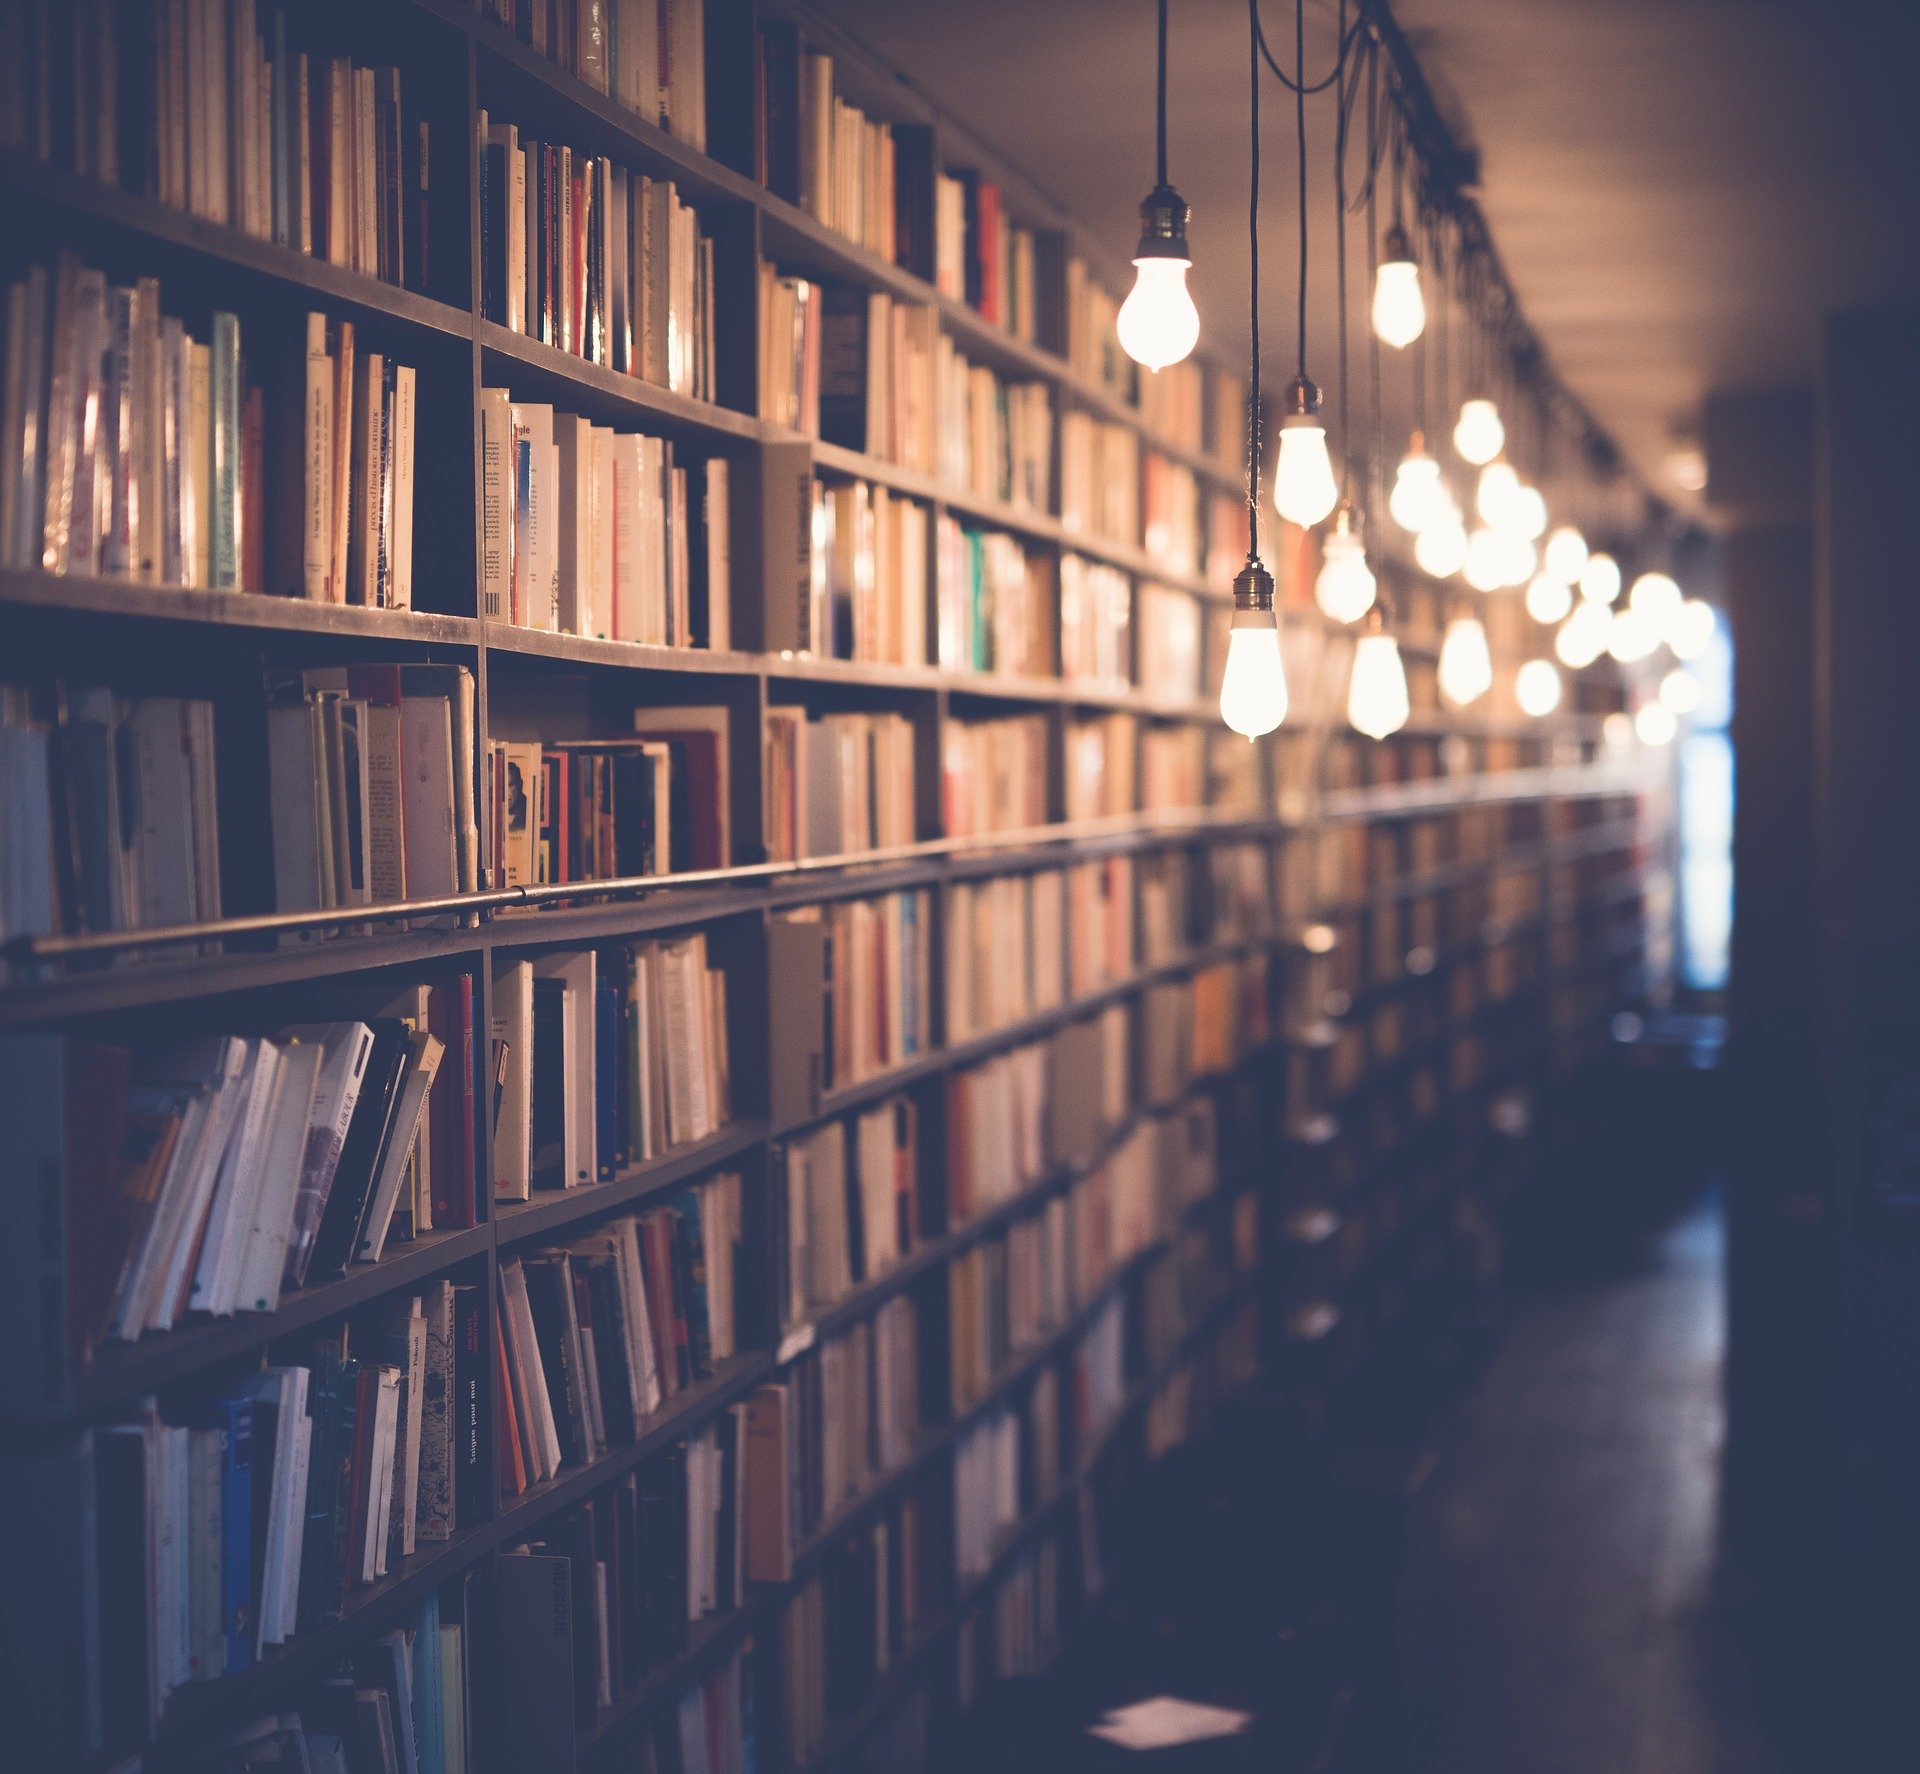 Wall to booksheleves, full of books.